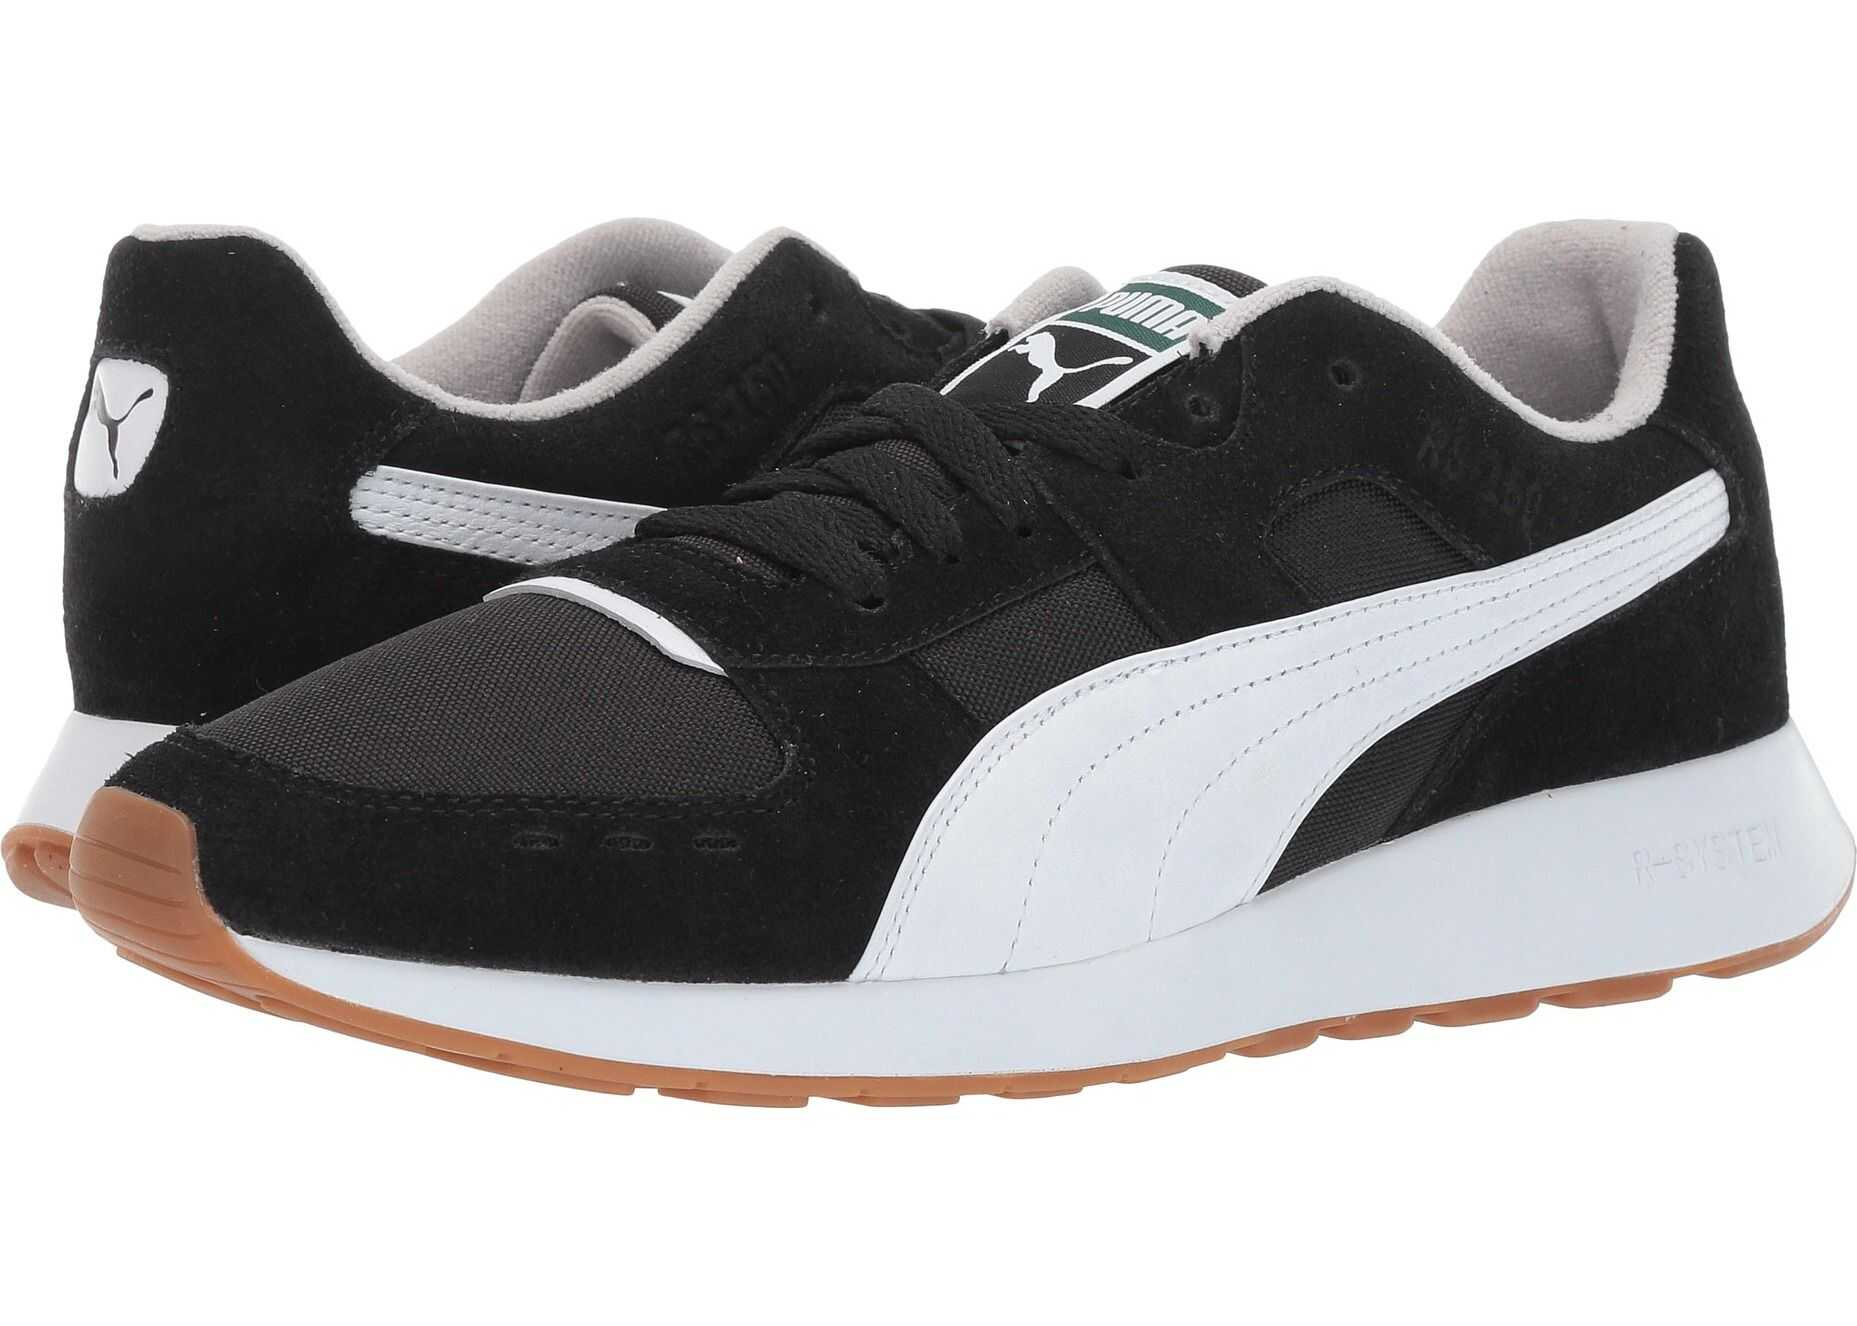 PUMA RS-150 Nylon Puma Black/Puma White